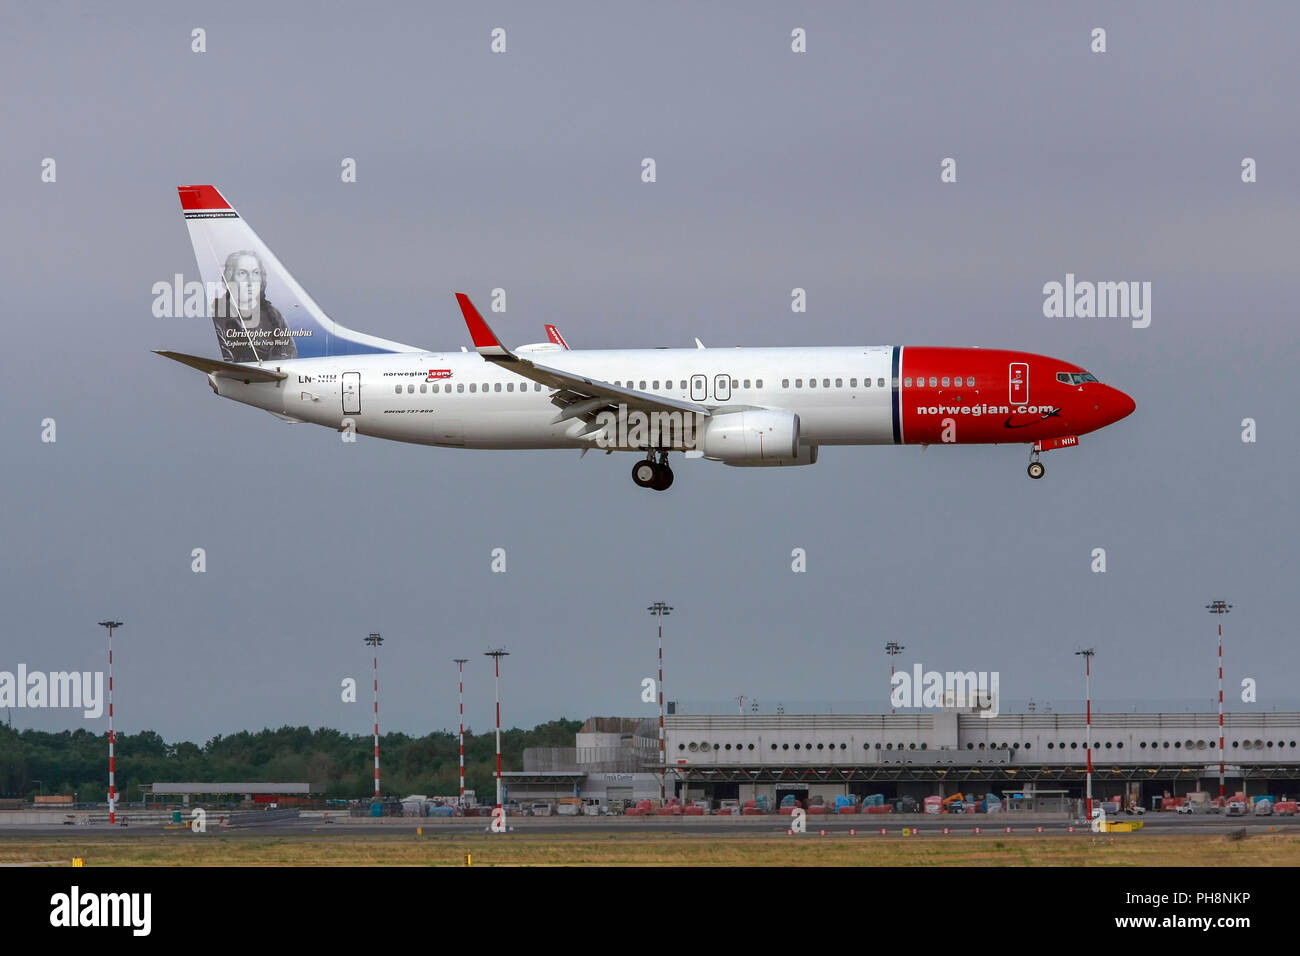 LN-NIH Norwegian Air Shuttle Boeing 737-800 in Malpensa (MXP/LIMC), Mailand, Italien Stockbild